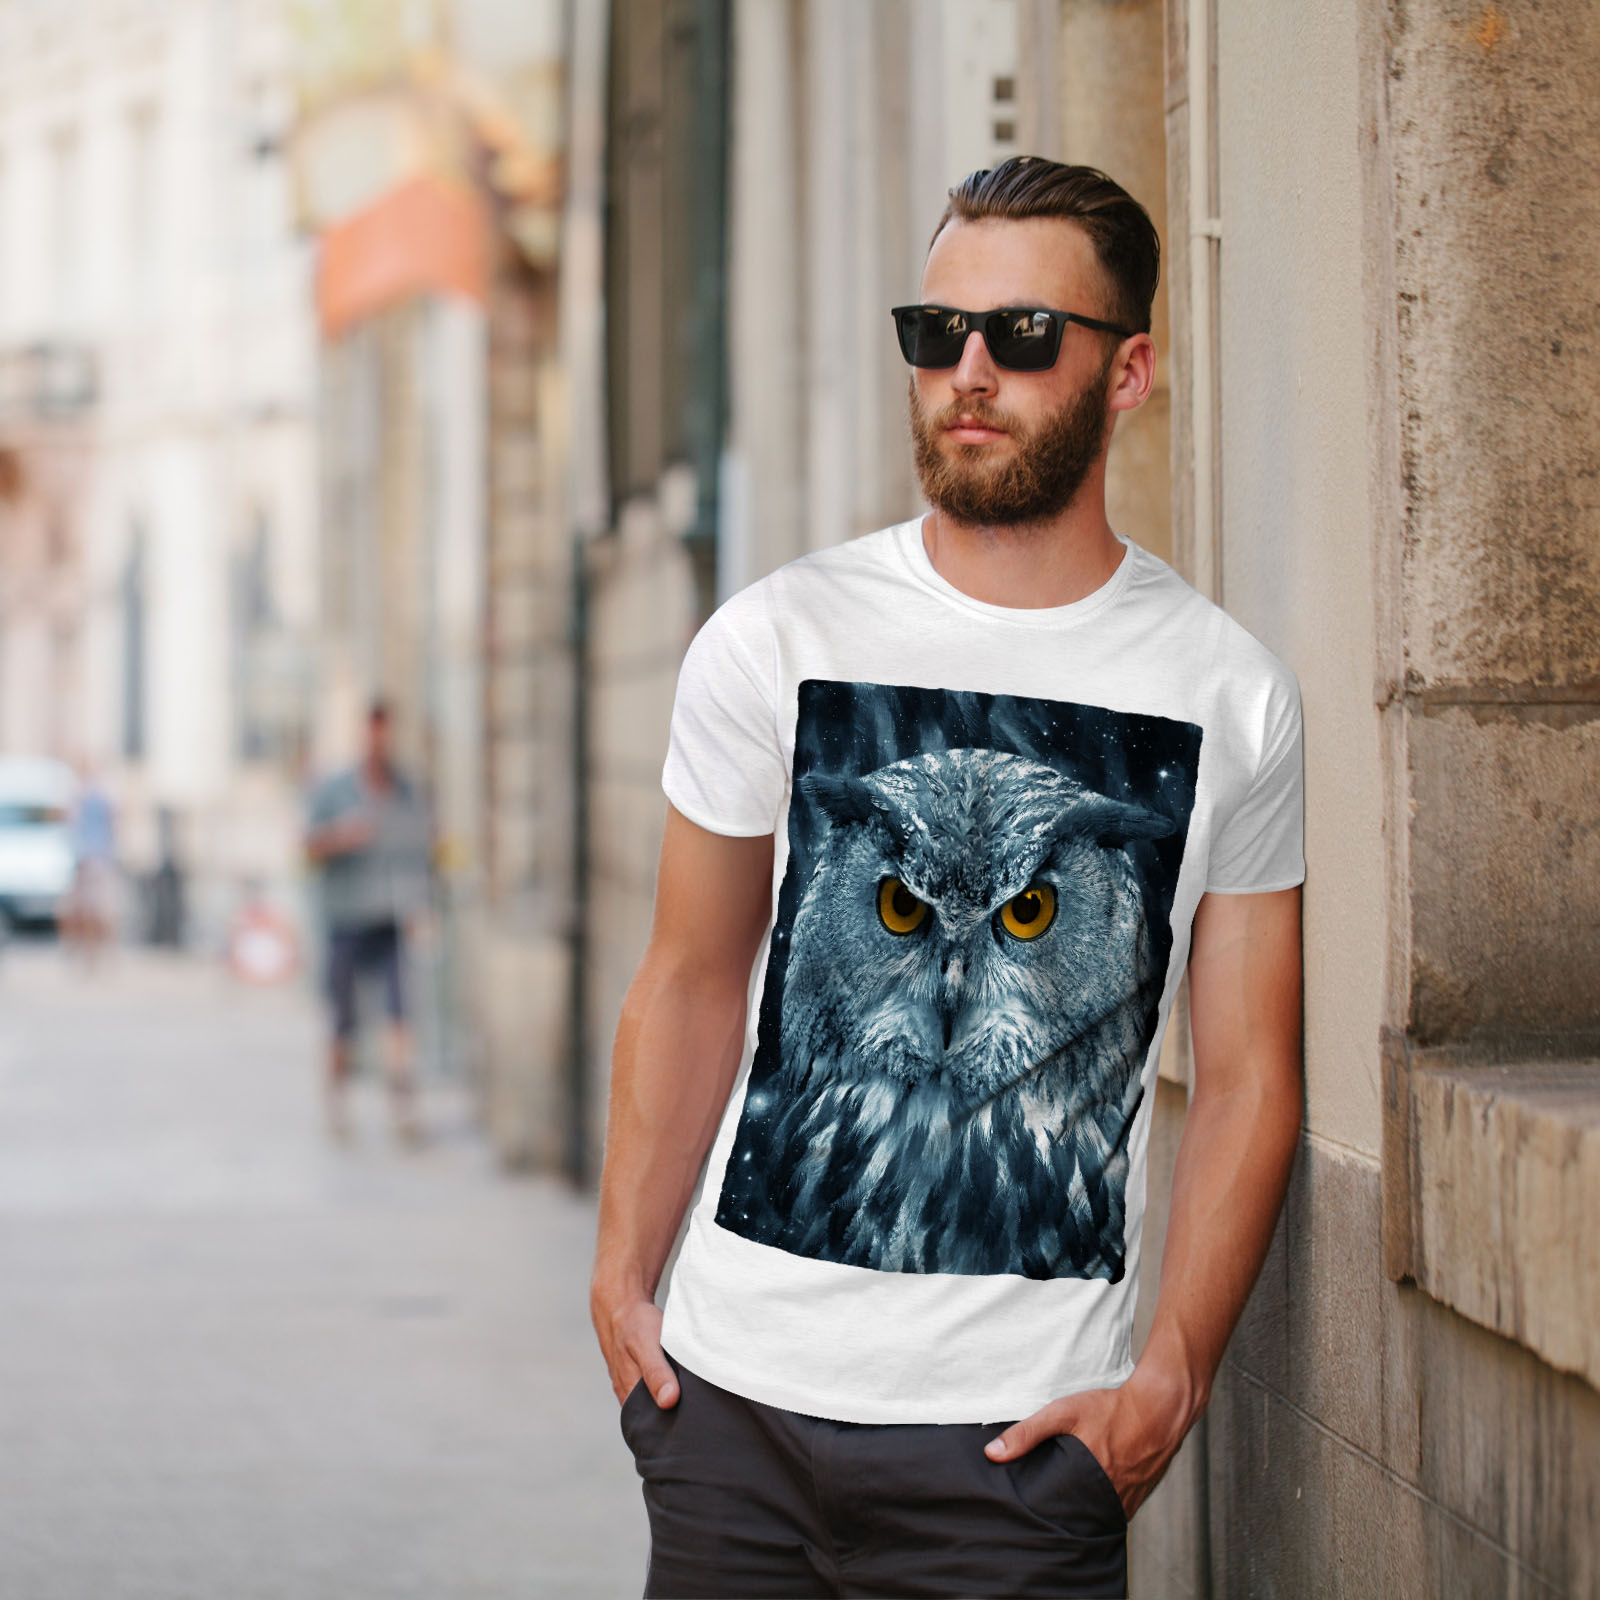 miniature 11 - Wellcoda-Wild-Looking-Owl-Mens-T-shirt-Mother-Graphic-Design-Printed-Tee